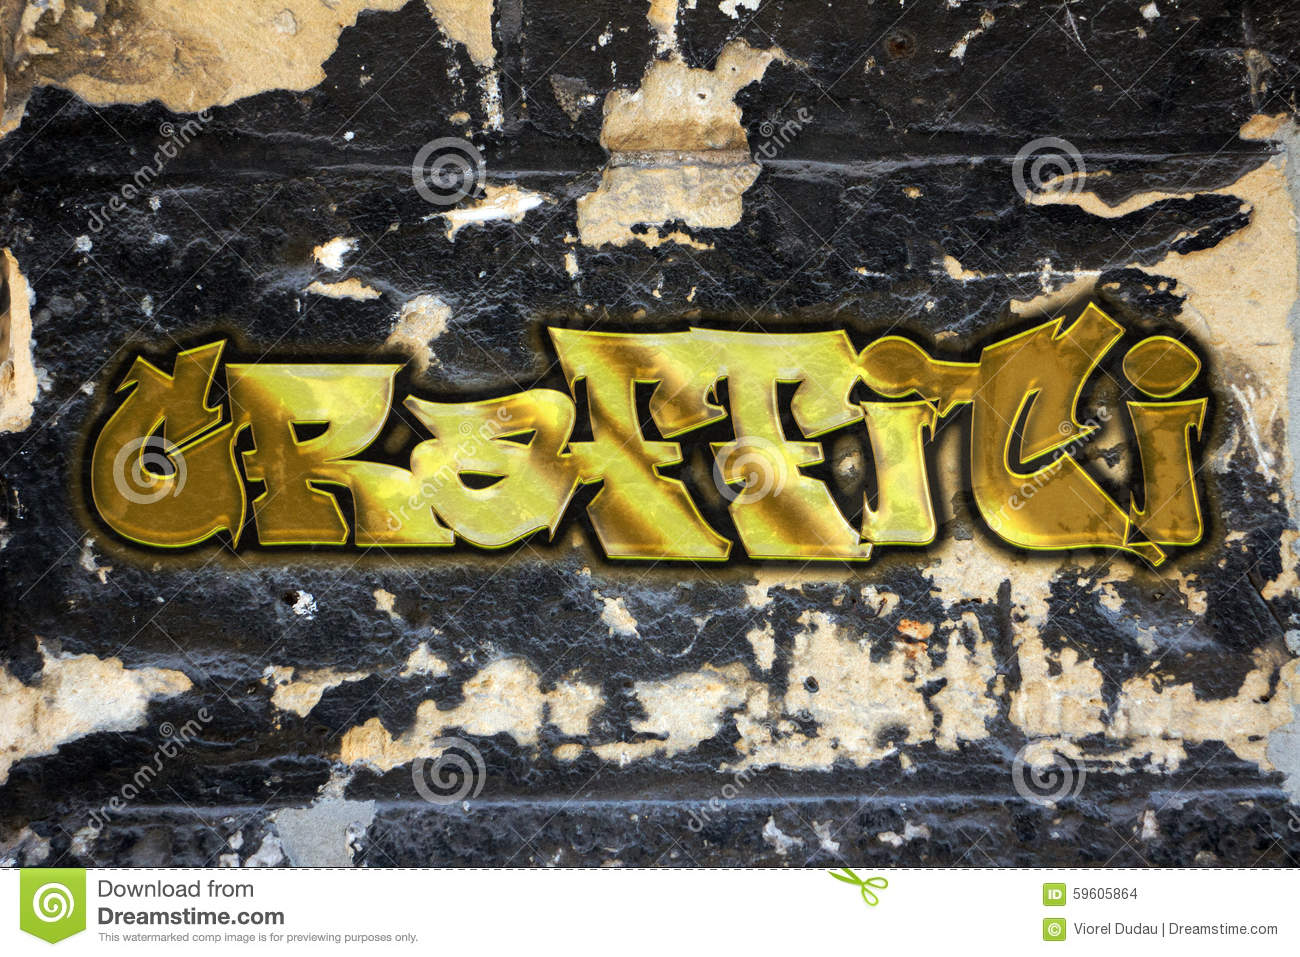 Graffiti stock illustration. Illustration of grunge, sprayed - 59605864